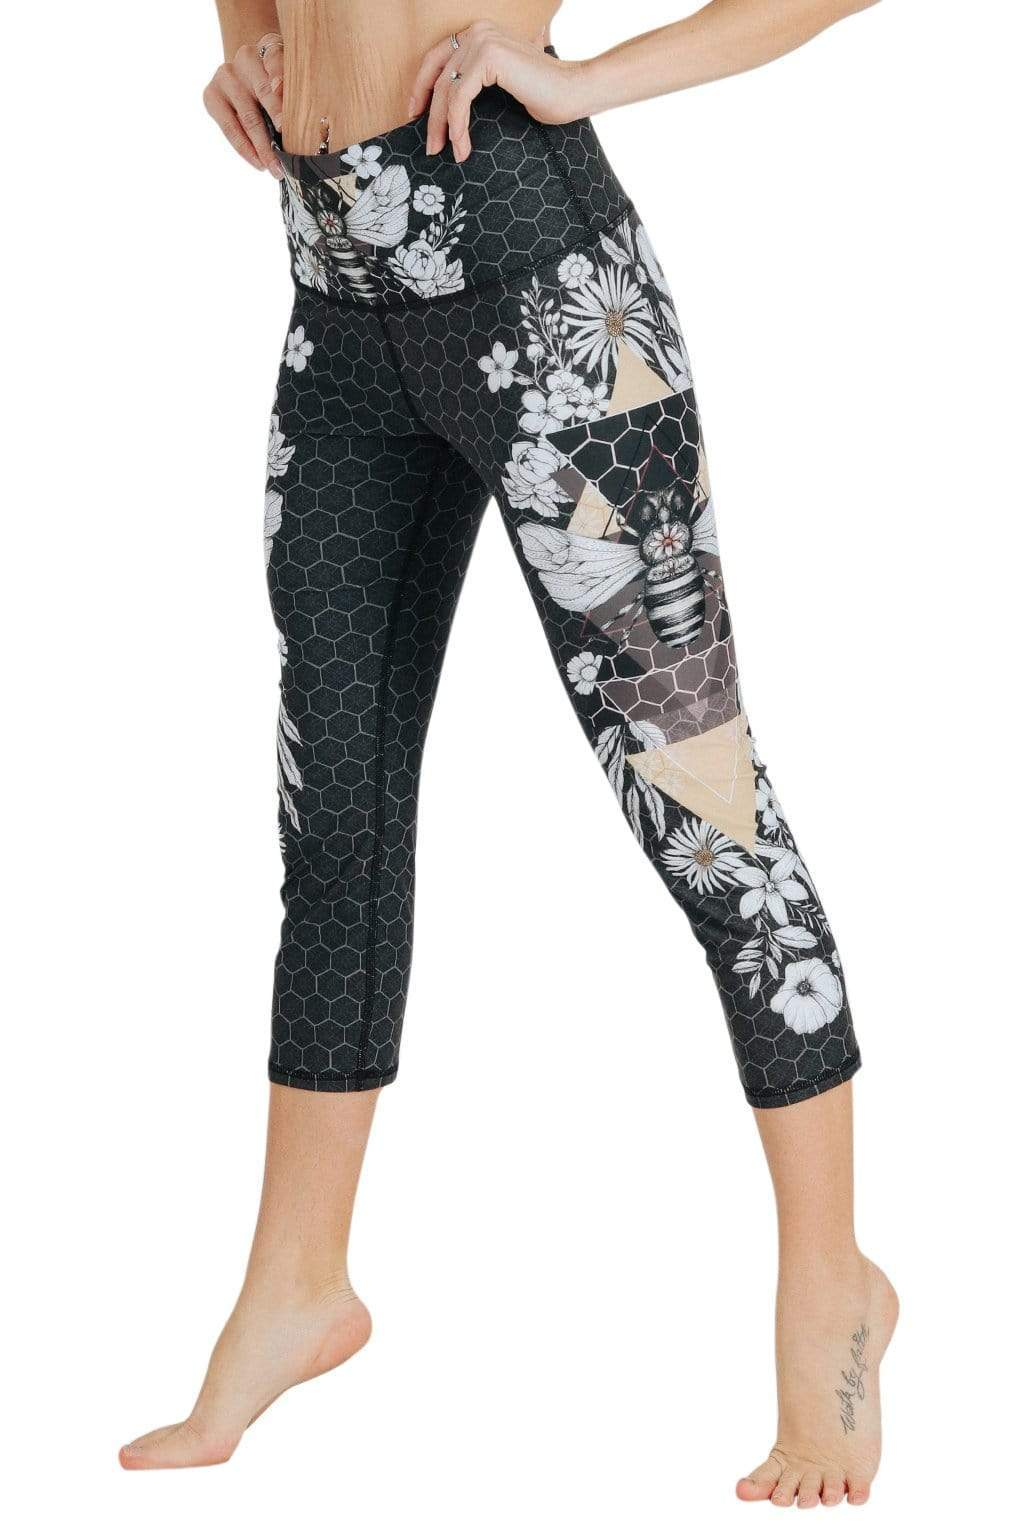 Yoga Democracy Leggings Beeloved Blackout Printed Yoga Crops